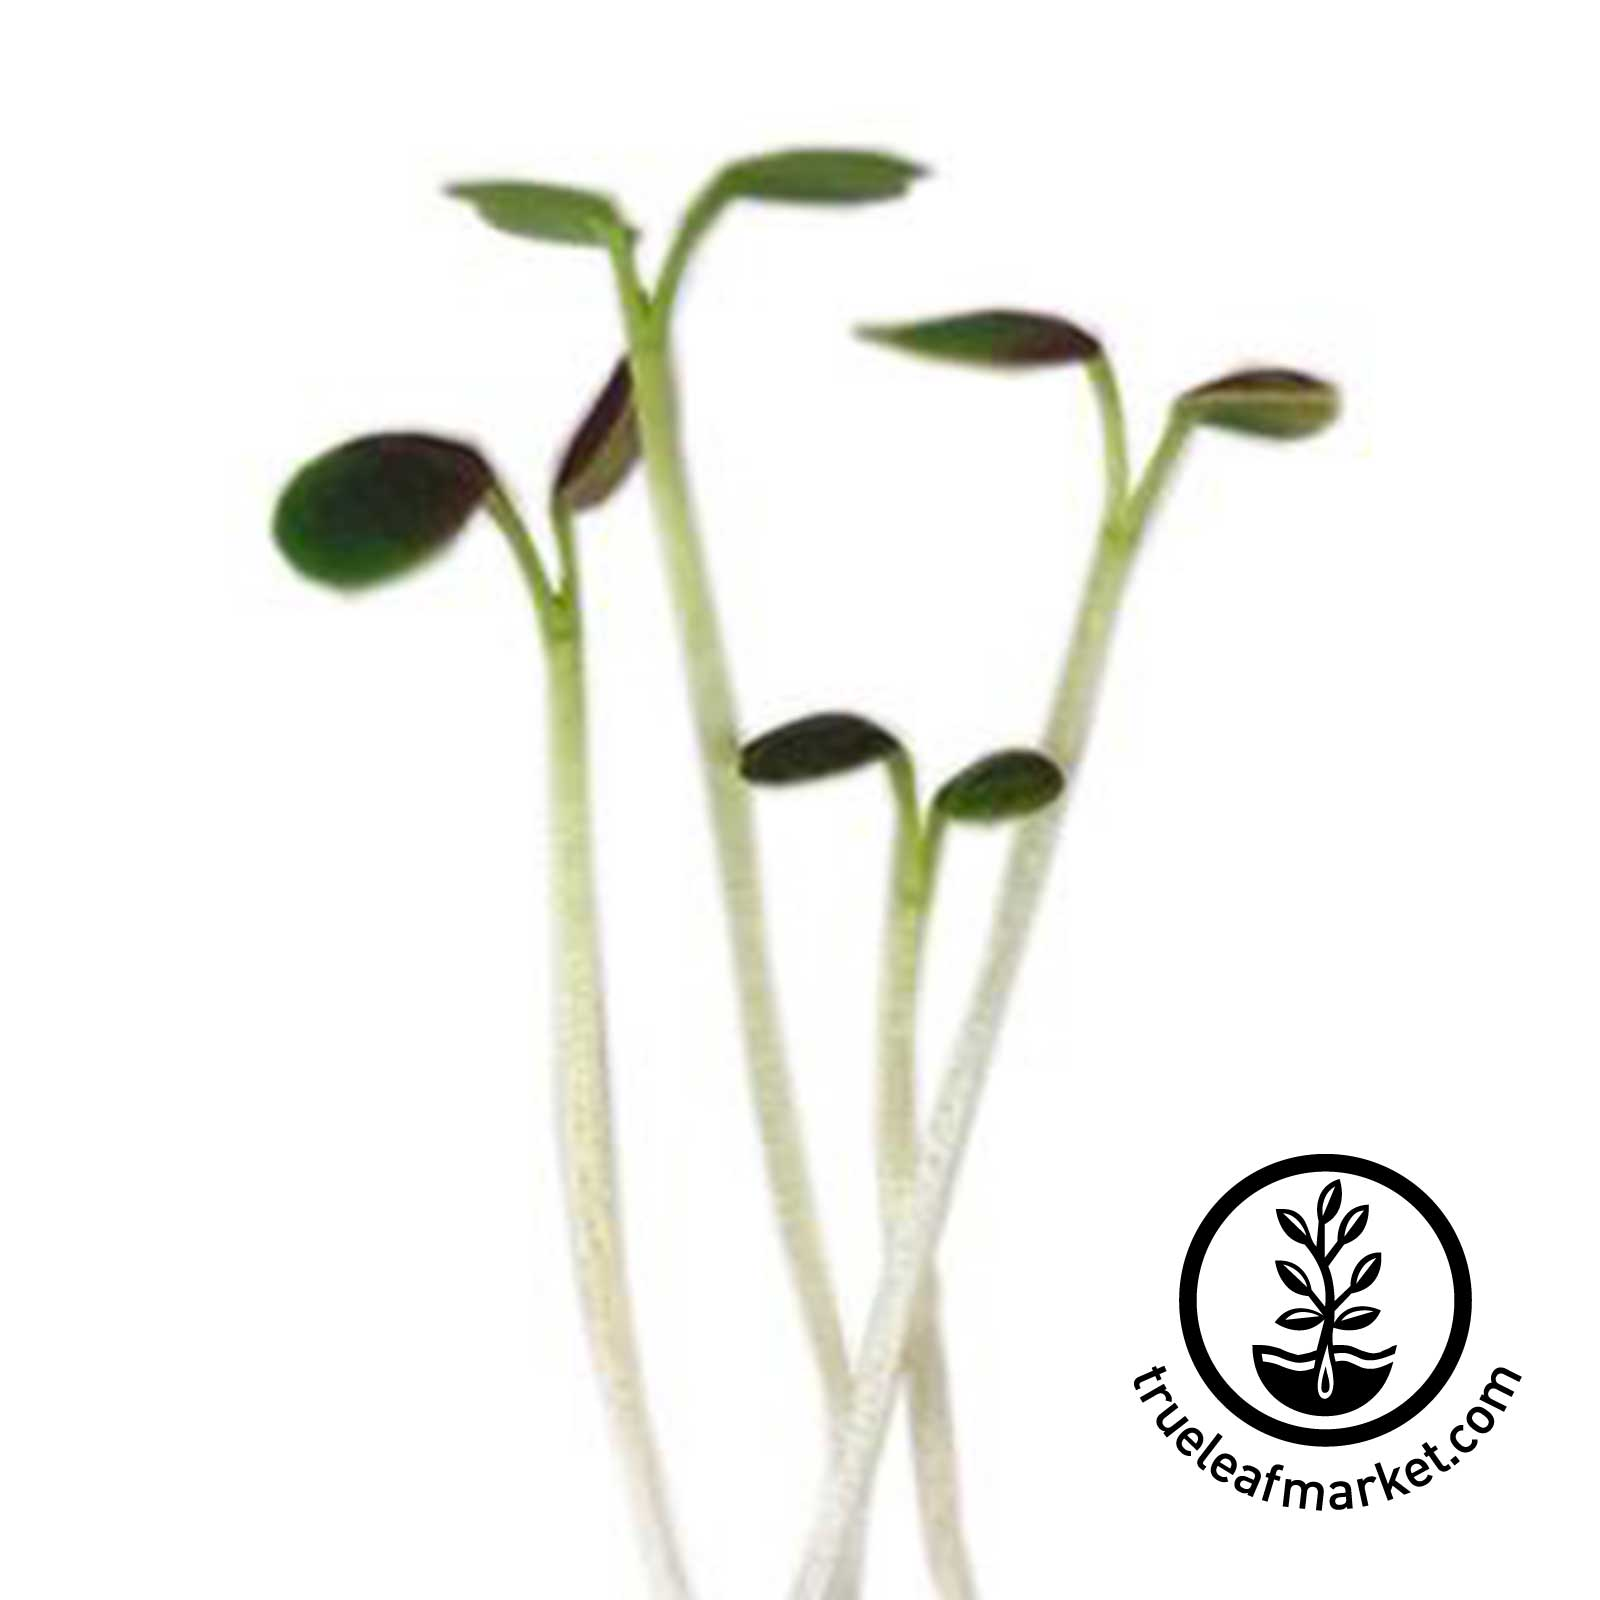 Red Komatsuna Microgreens Seeds komatsuna, red komatsuna, japanese mustard spinach, seeds, seed